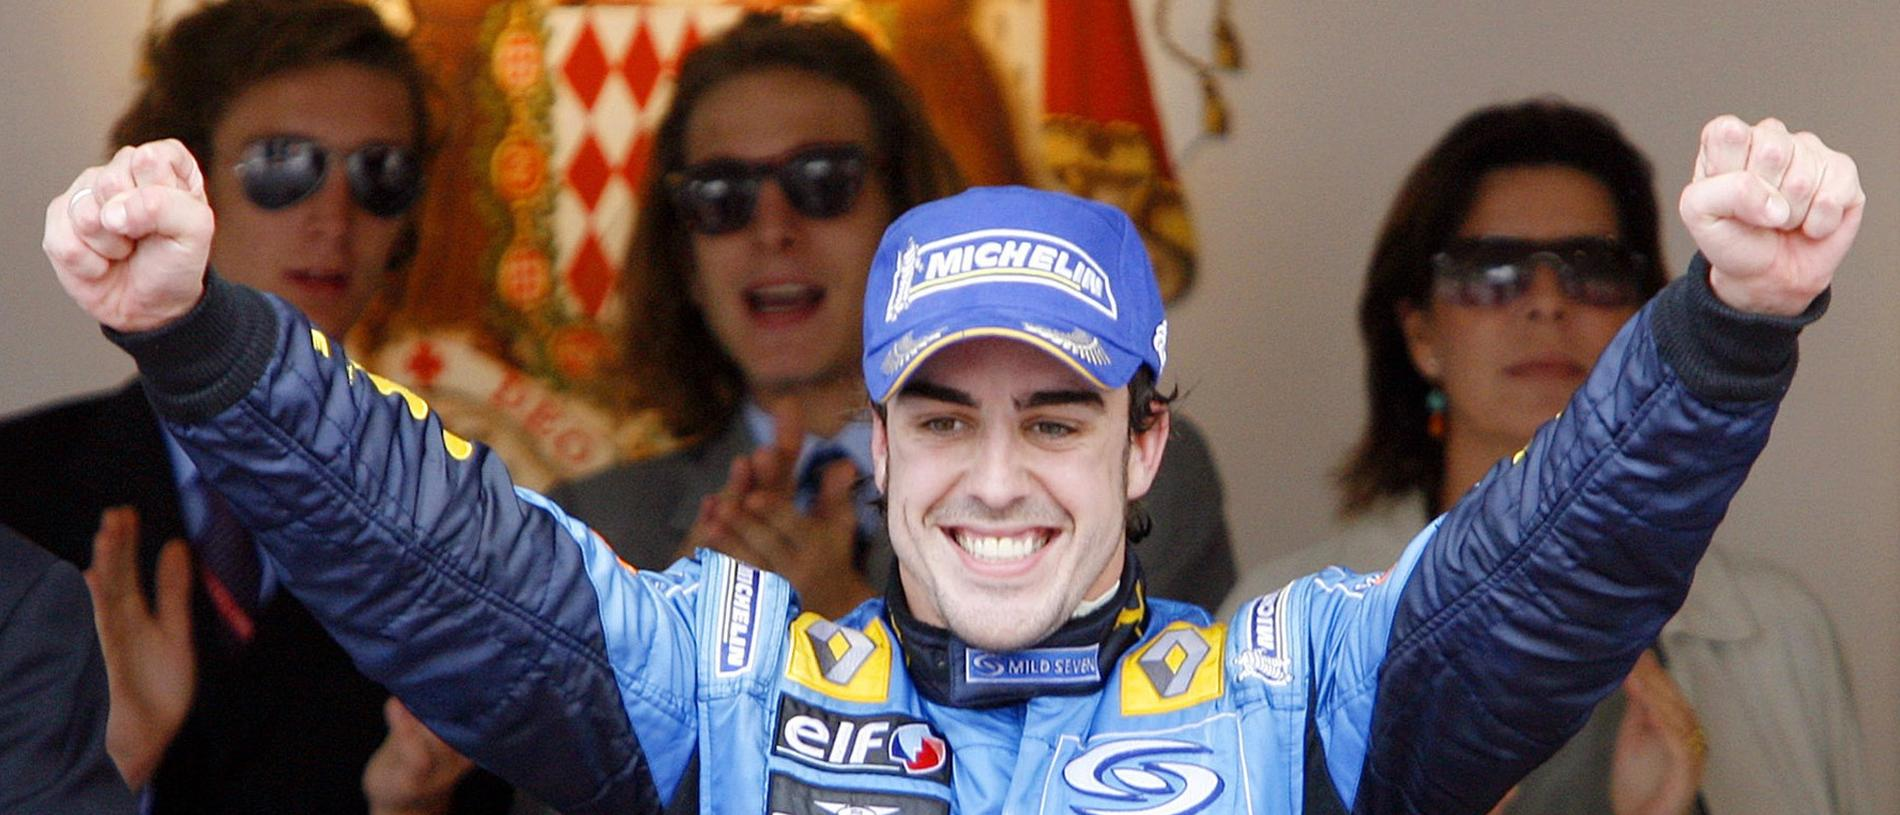 Renault driver Fernando Alonso of Spain celebrates on the podium after winning the Formula One Monaco Grand Prix, at the Monaco racetrack, 28/05/2006.  (AP Photo/Luca Bruno)